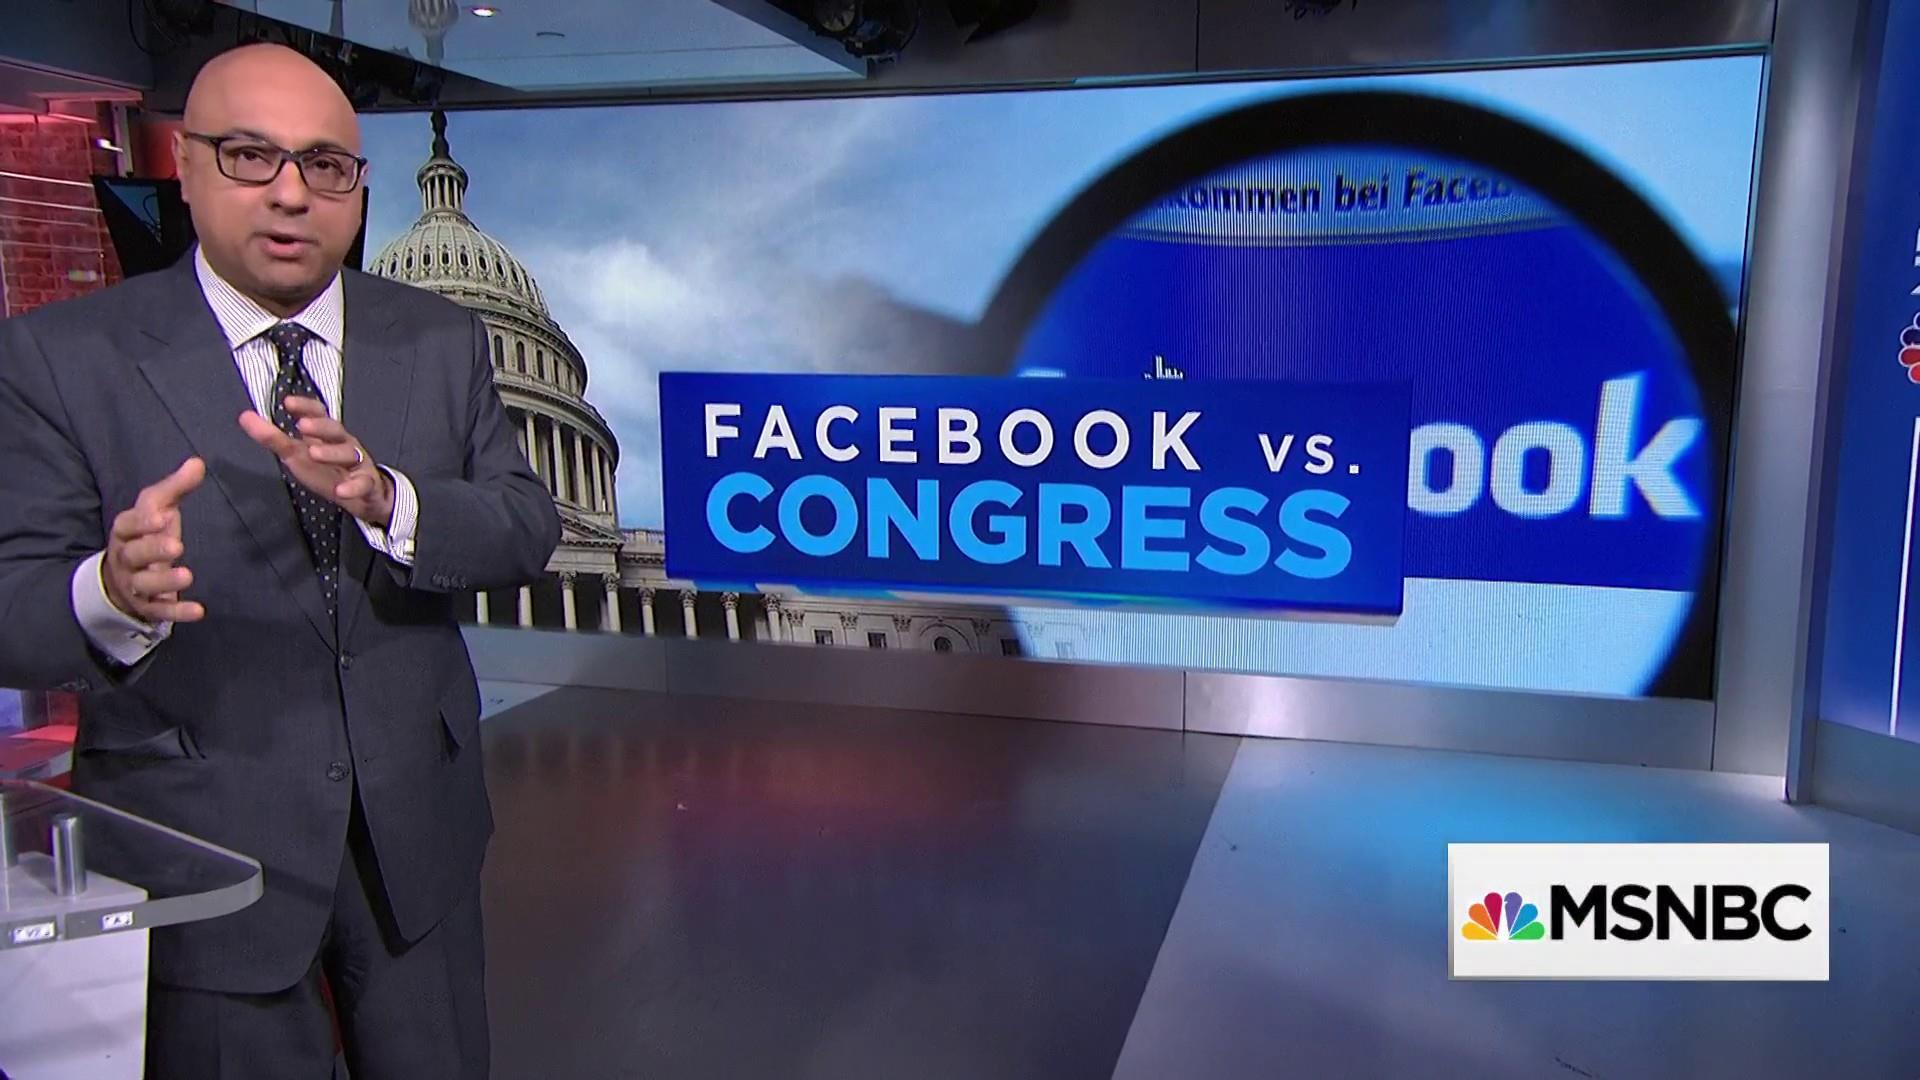 Ahead of Senate grilling, what are the accusations against Facebook?